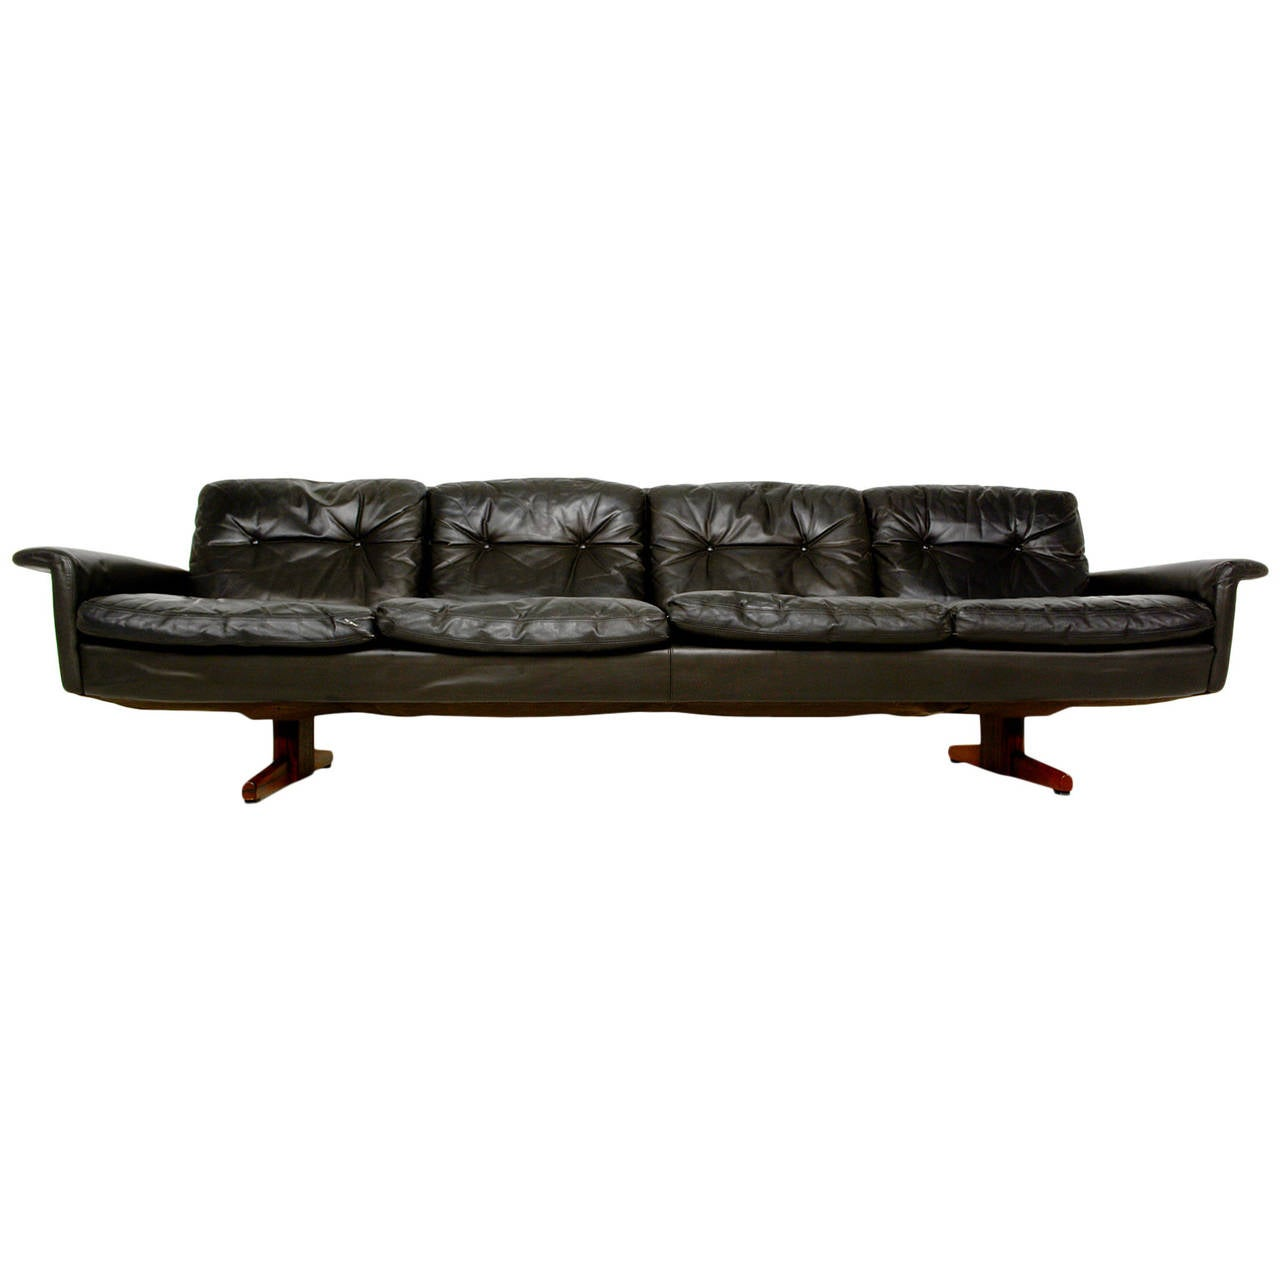 This Vatne Mobler Leather and Rosewood Sofa is no longer available.